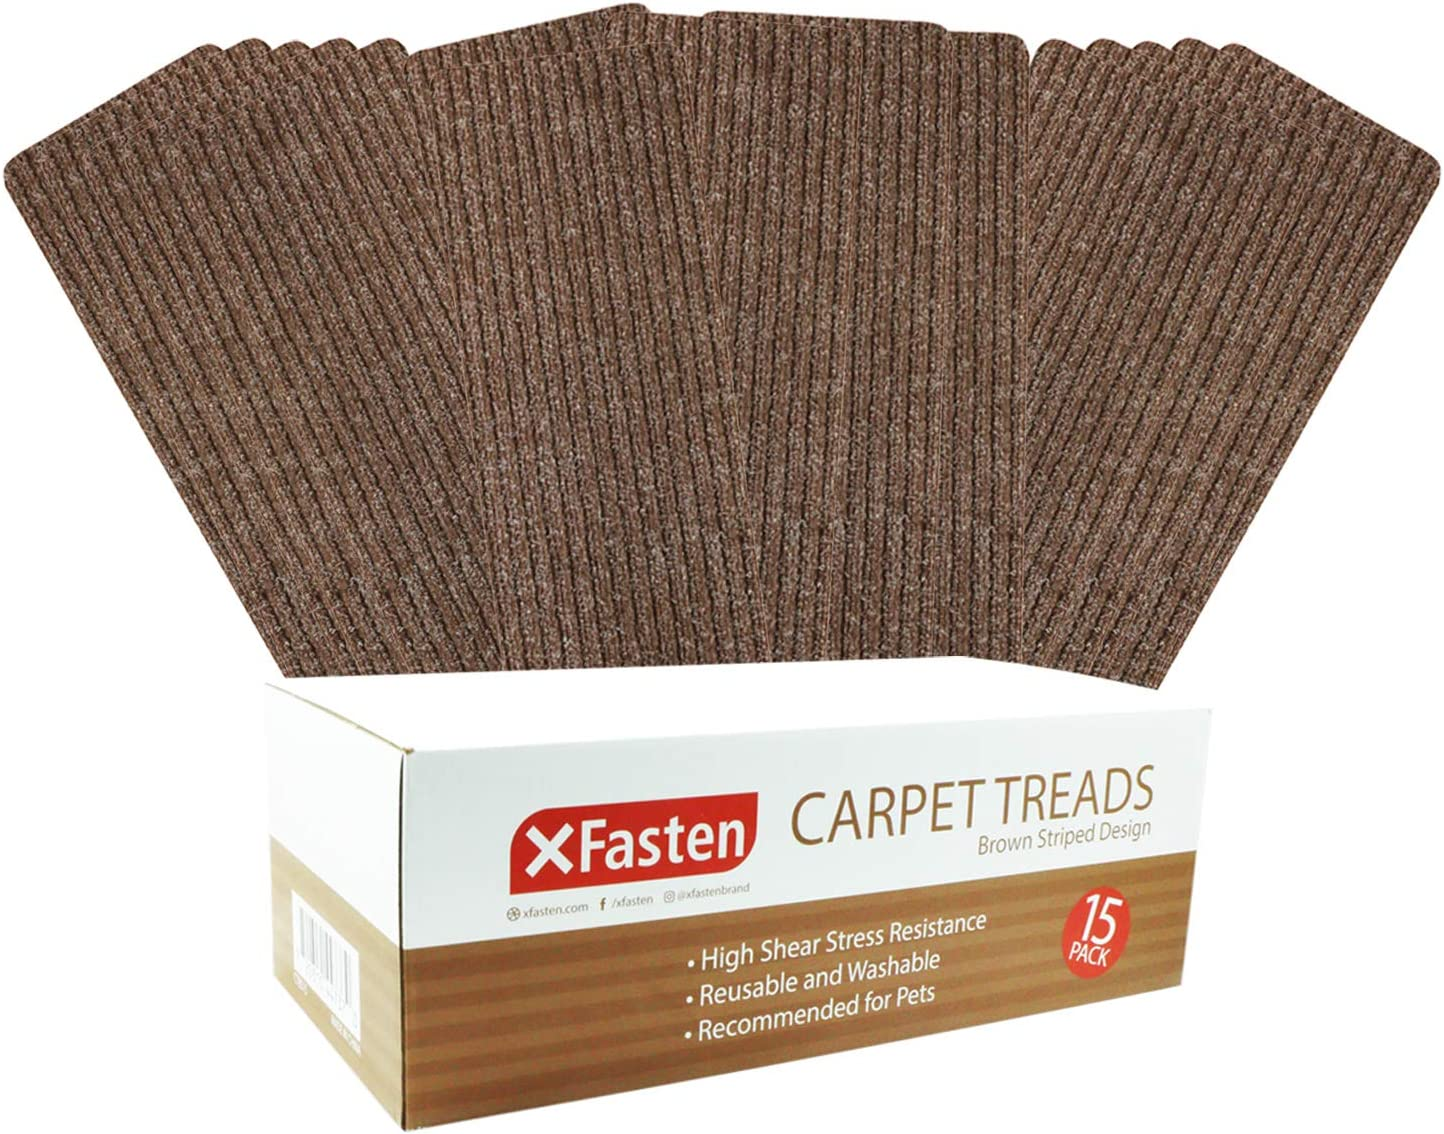 XFasten Nonslip Carpet Stair Step Treads for Wooden Stairs, Brown, Stripes Design- Set of 15- Indoor Stair Rug Runners with Nonskid Silicone Base, Washable and Easy to Vacuum